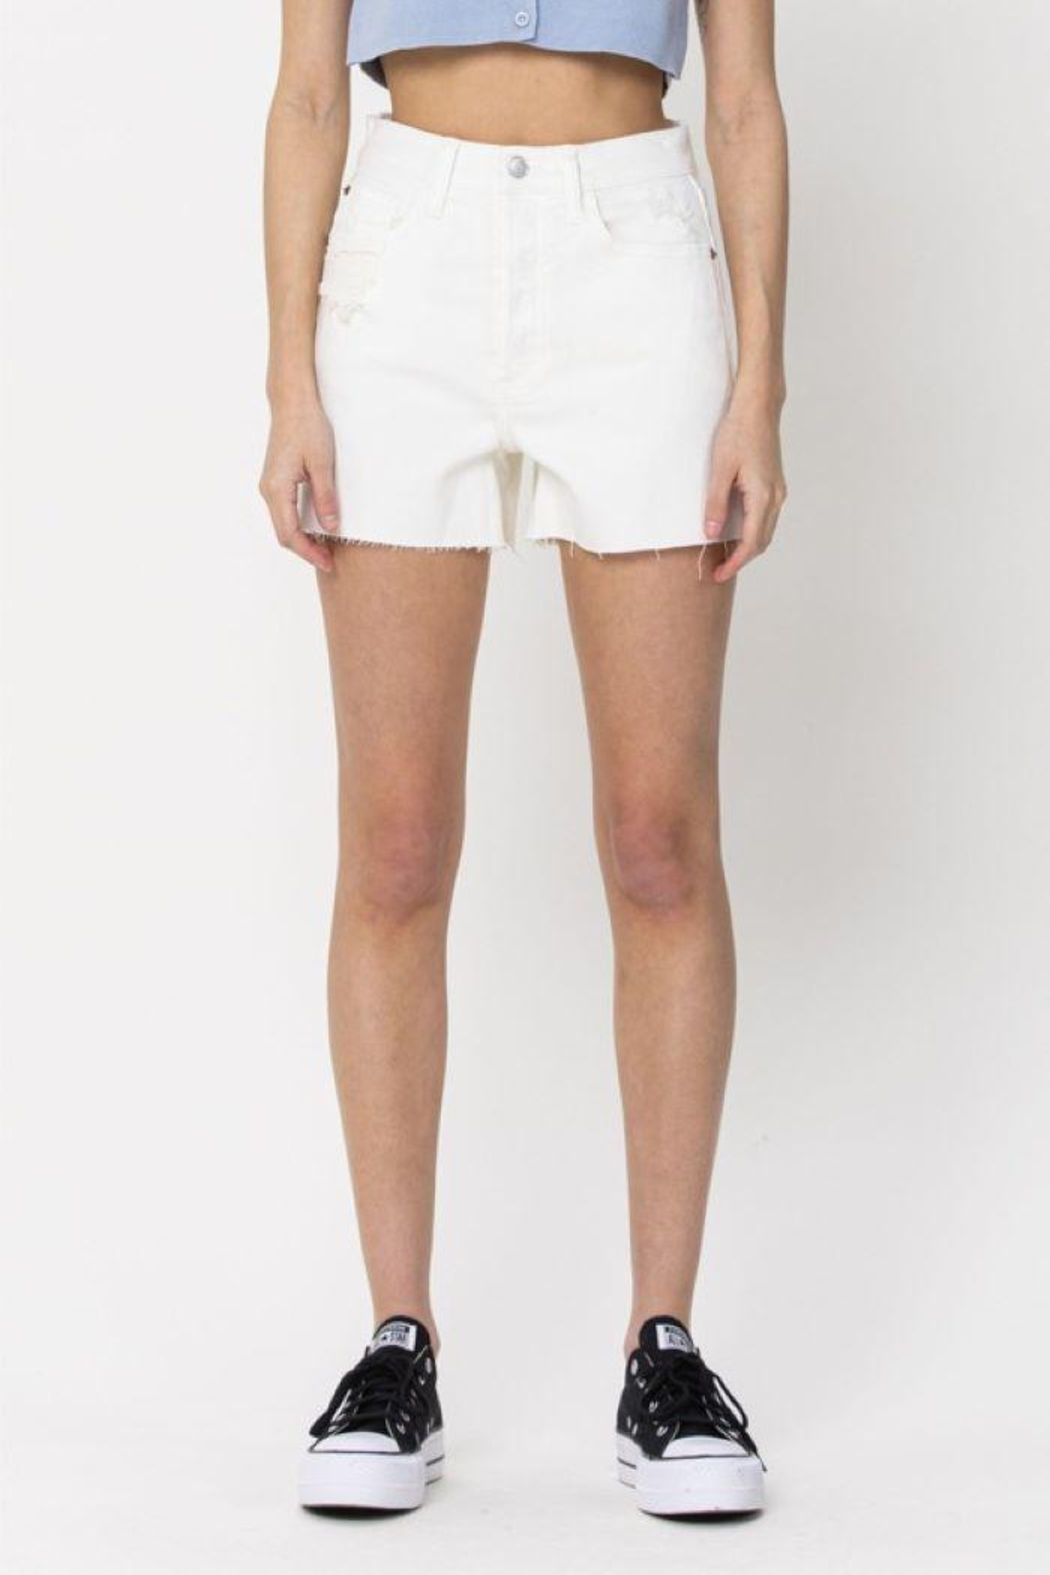 Cello Jeans Vintage High Rise Mom Shorts - Side Cropped Image